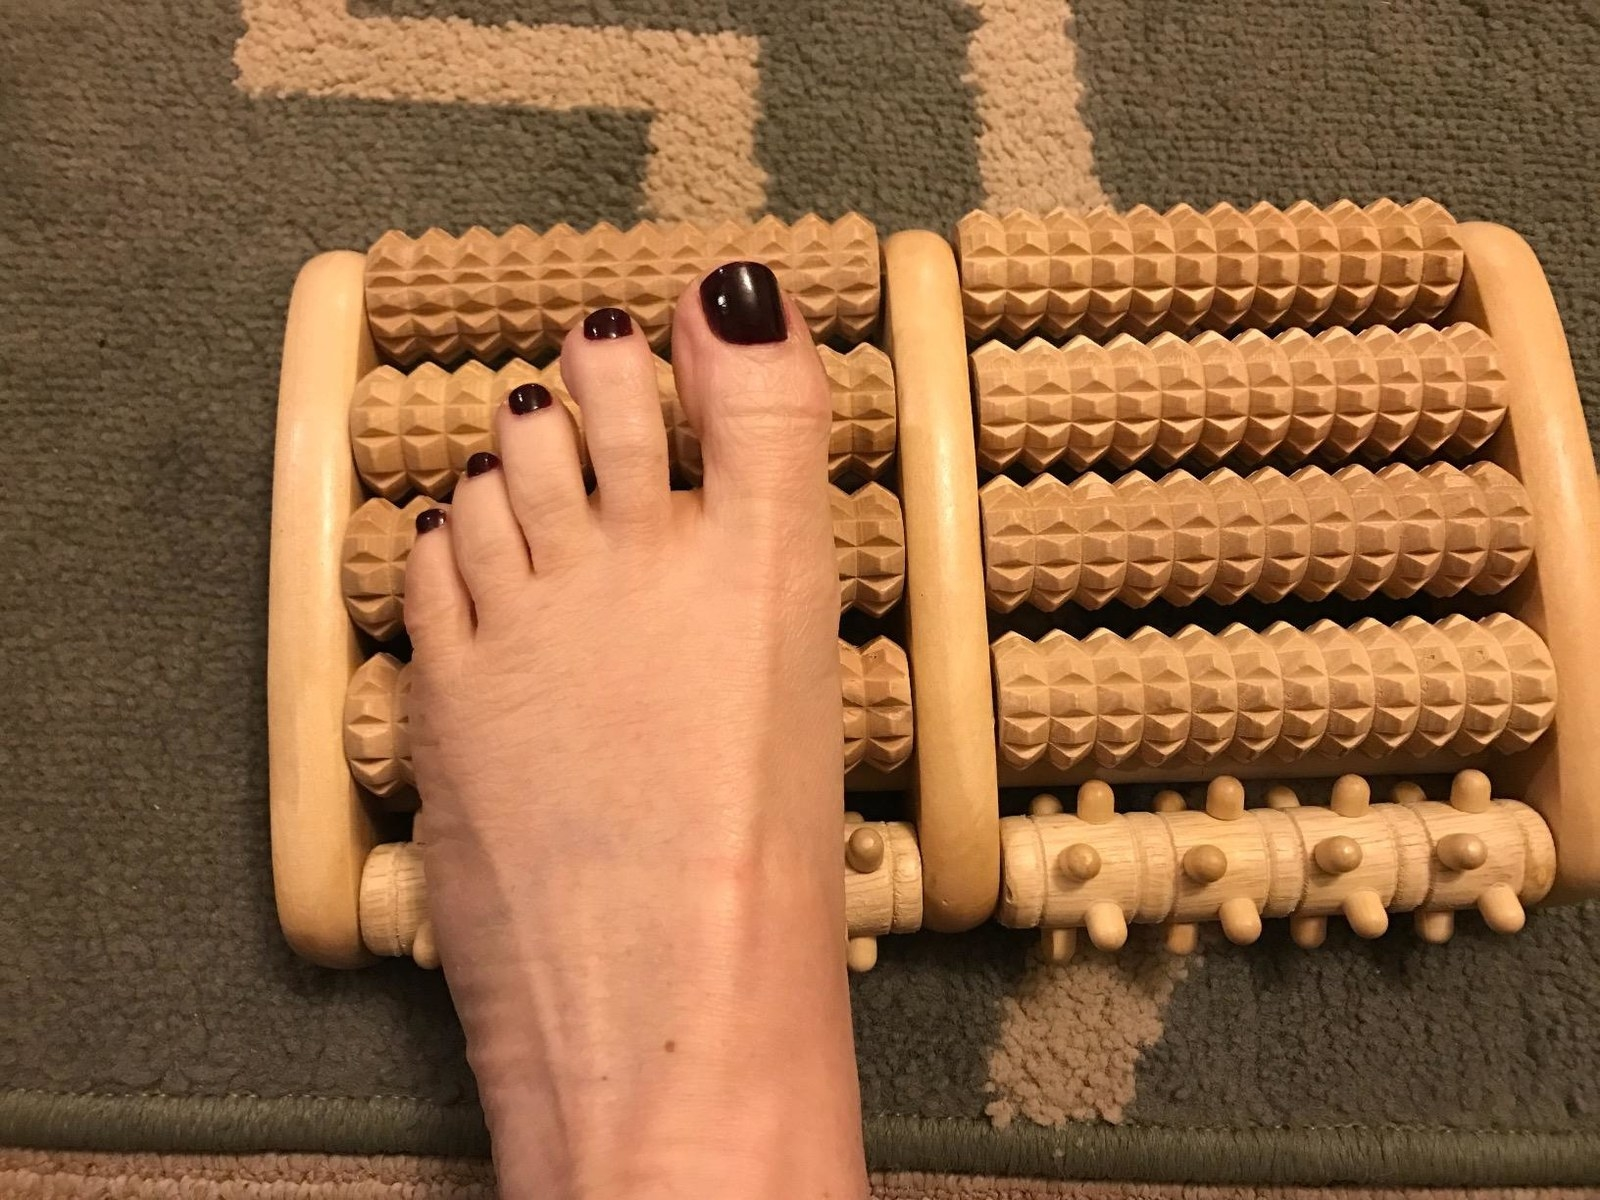 person's foot on the wooden massager's bumpy rollers